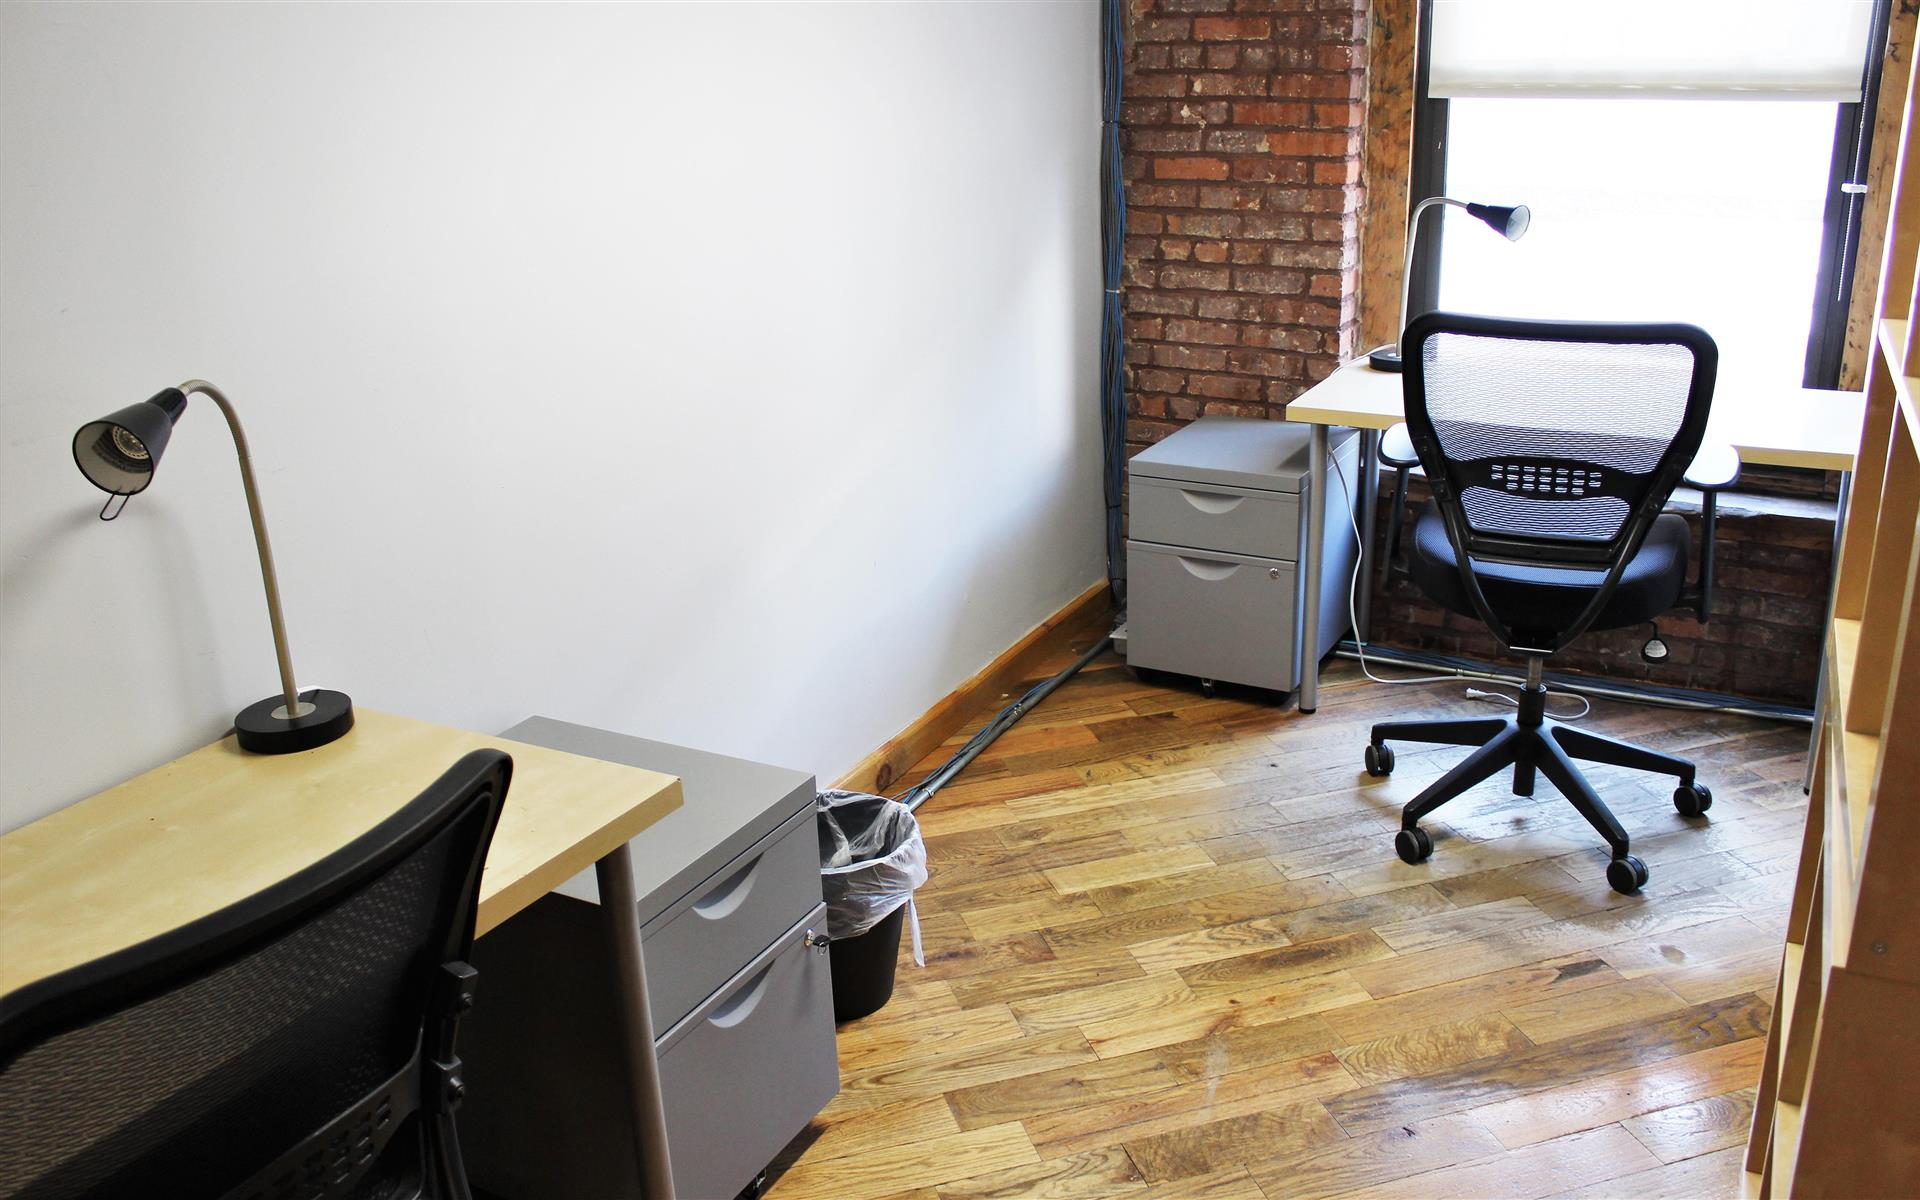 Green Desk - 195 Plymouth Street - 2 Person Rustic Office in DUMBO